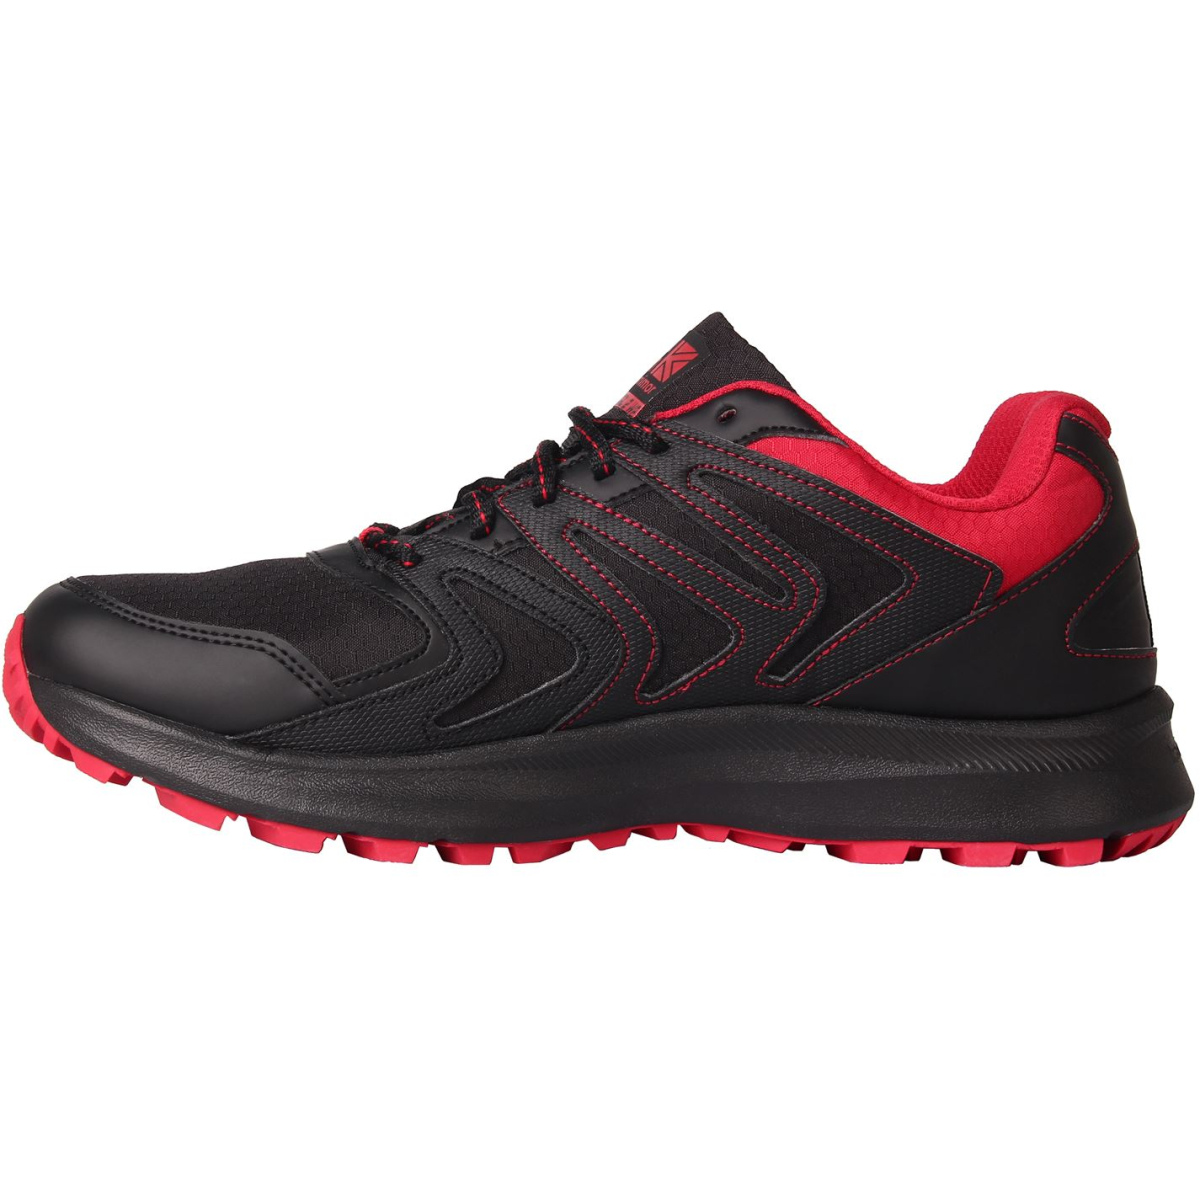 Karrimor Caracal Waterproof Trail Laufschuhe Herren